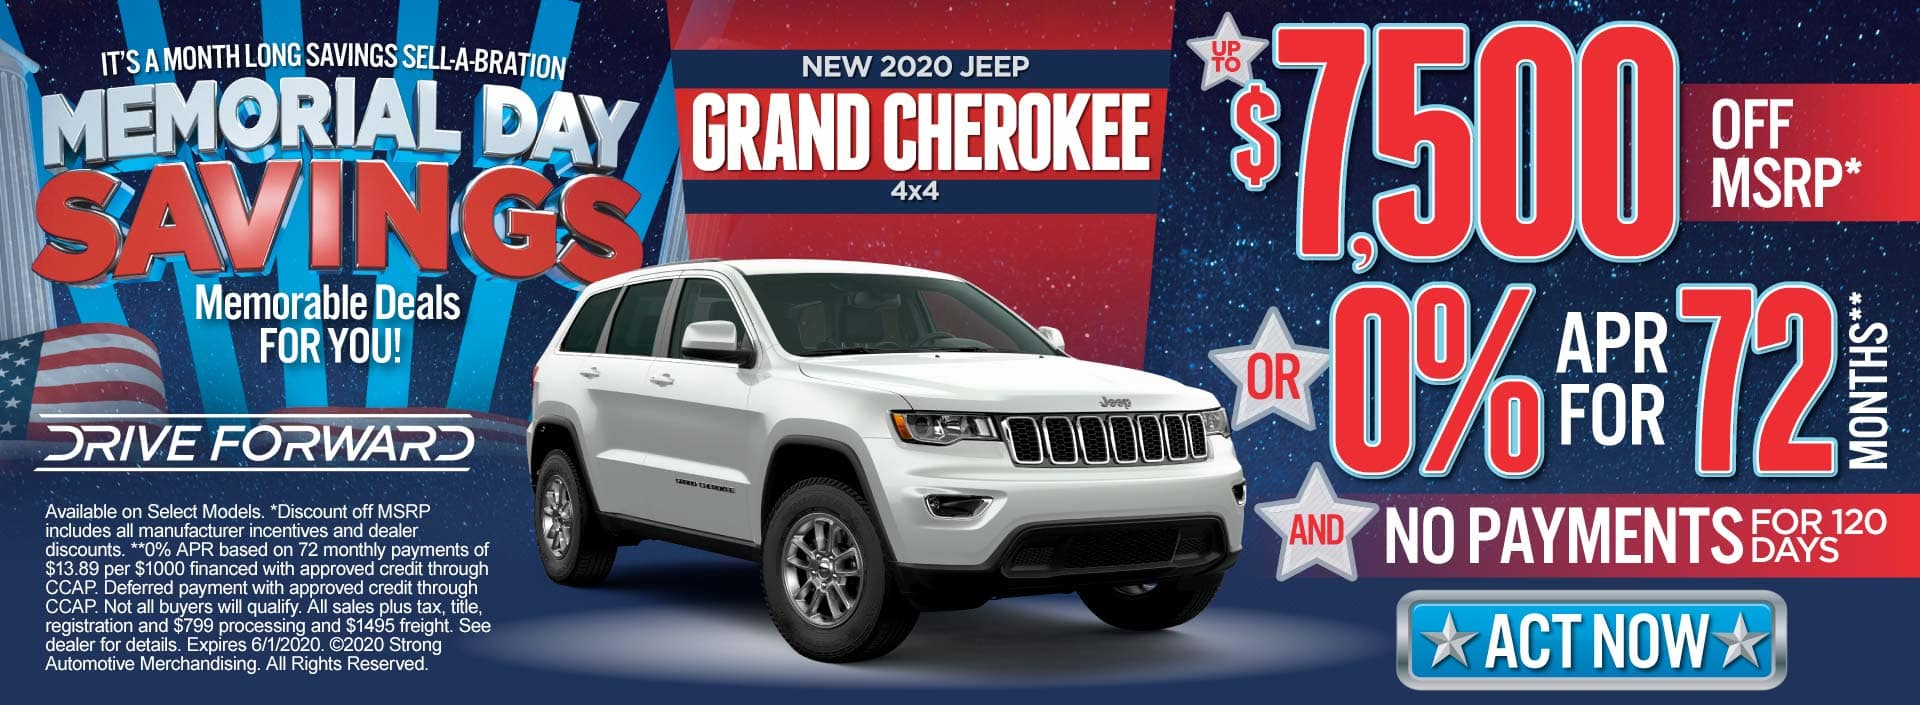 New 2020 Jeep Grand Cherokee up to $7500 Off MSRP or 0% for 72 Months & No payments for 120 Days. ACT NOW